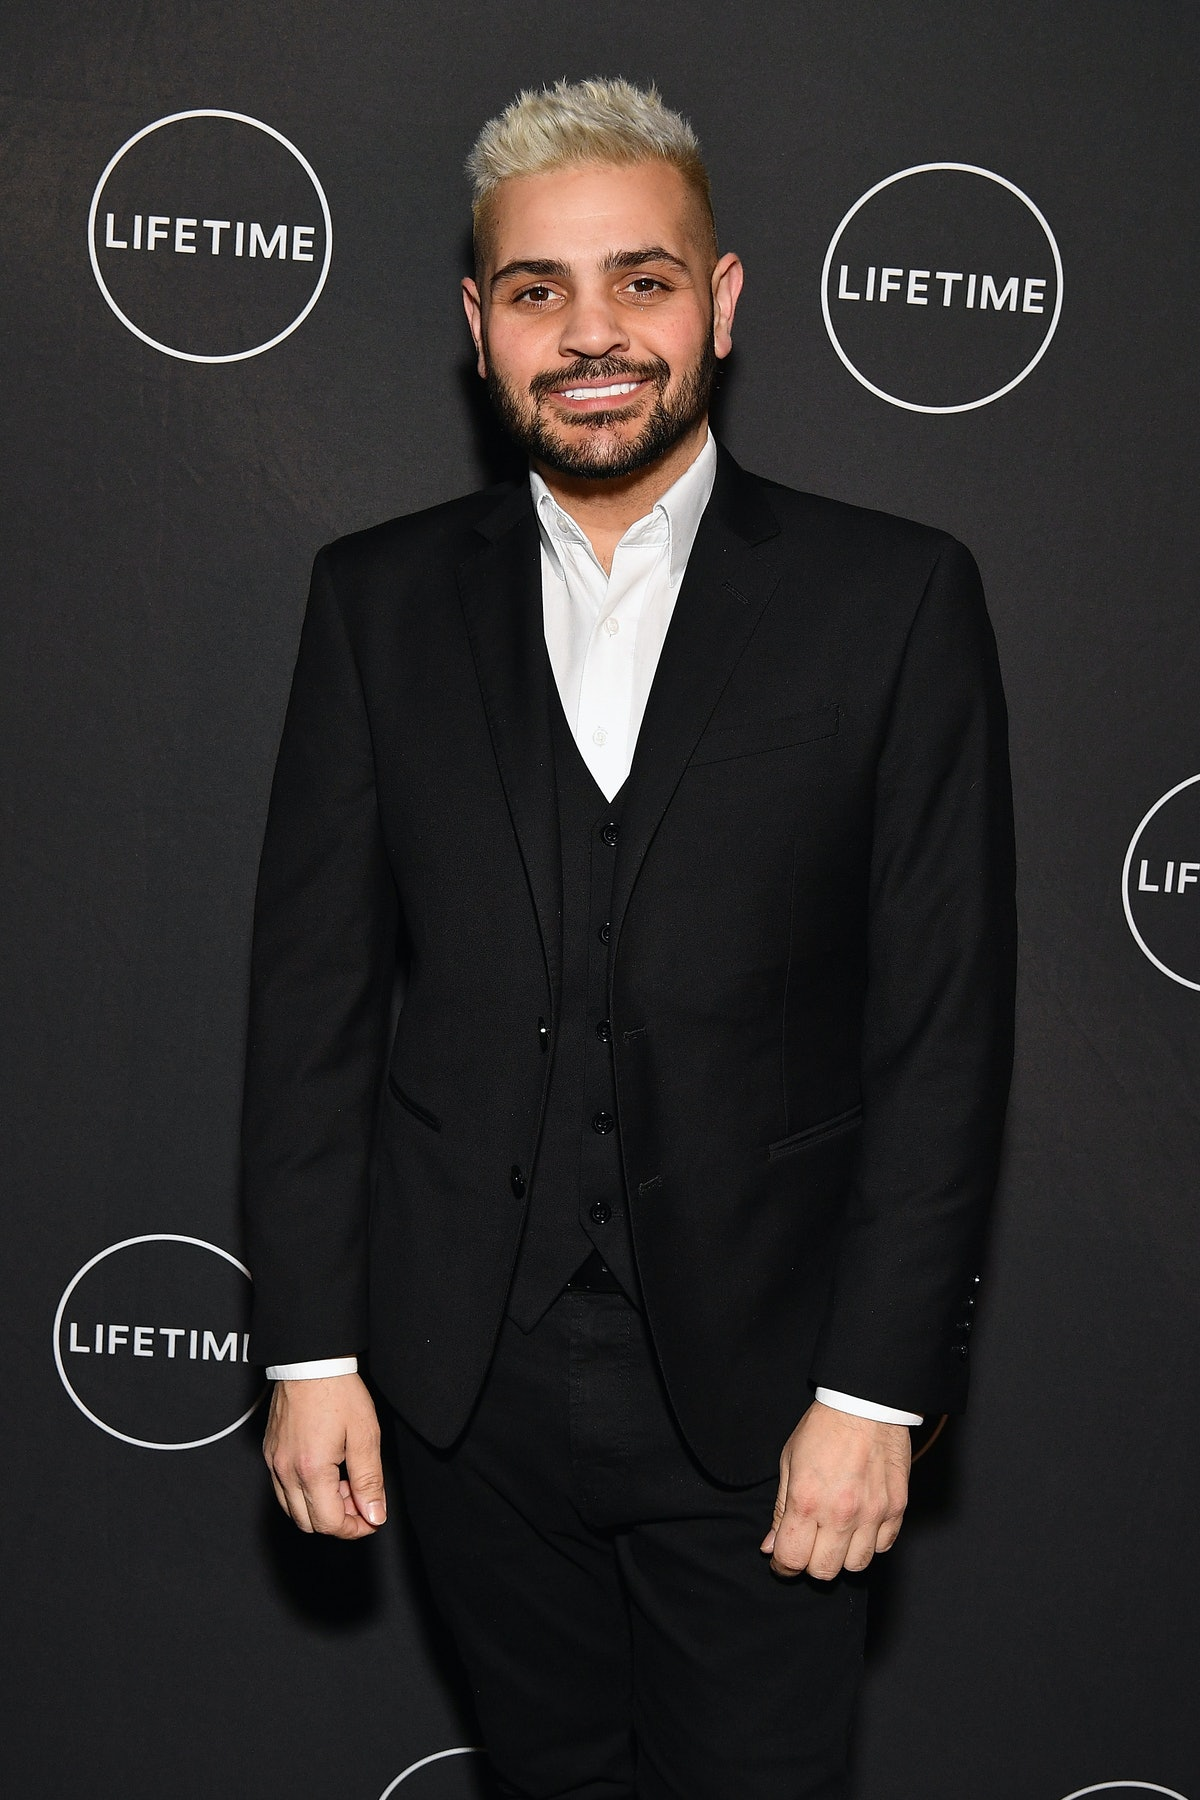 John Legend tweeted out about that Chrissy Teigen and Michael Costello drama, and it's clear where h...